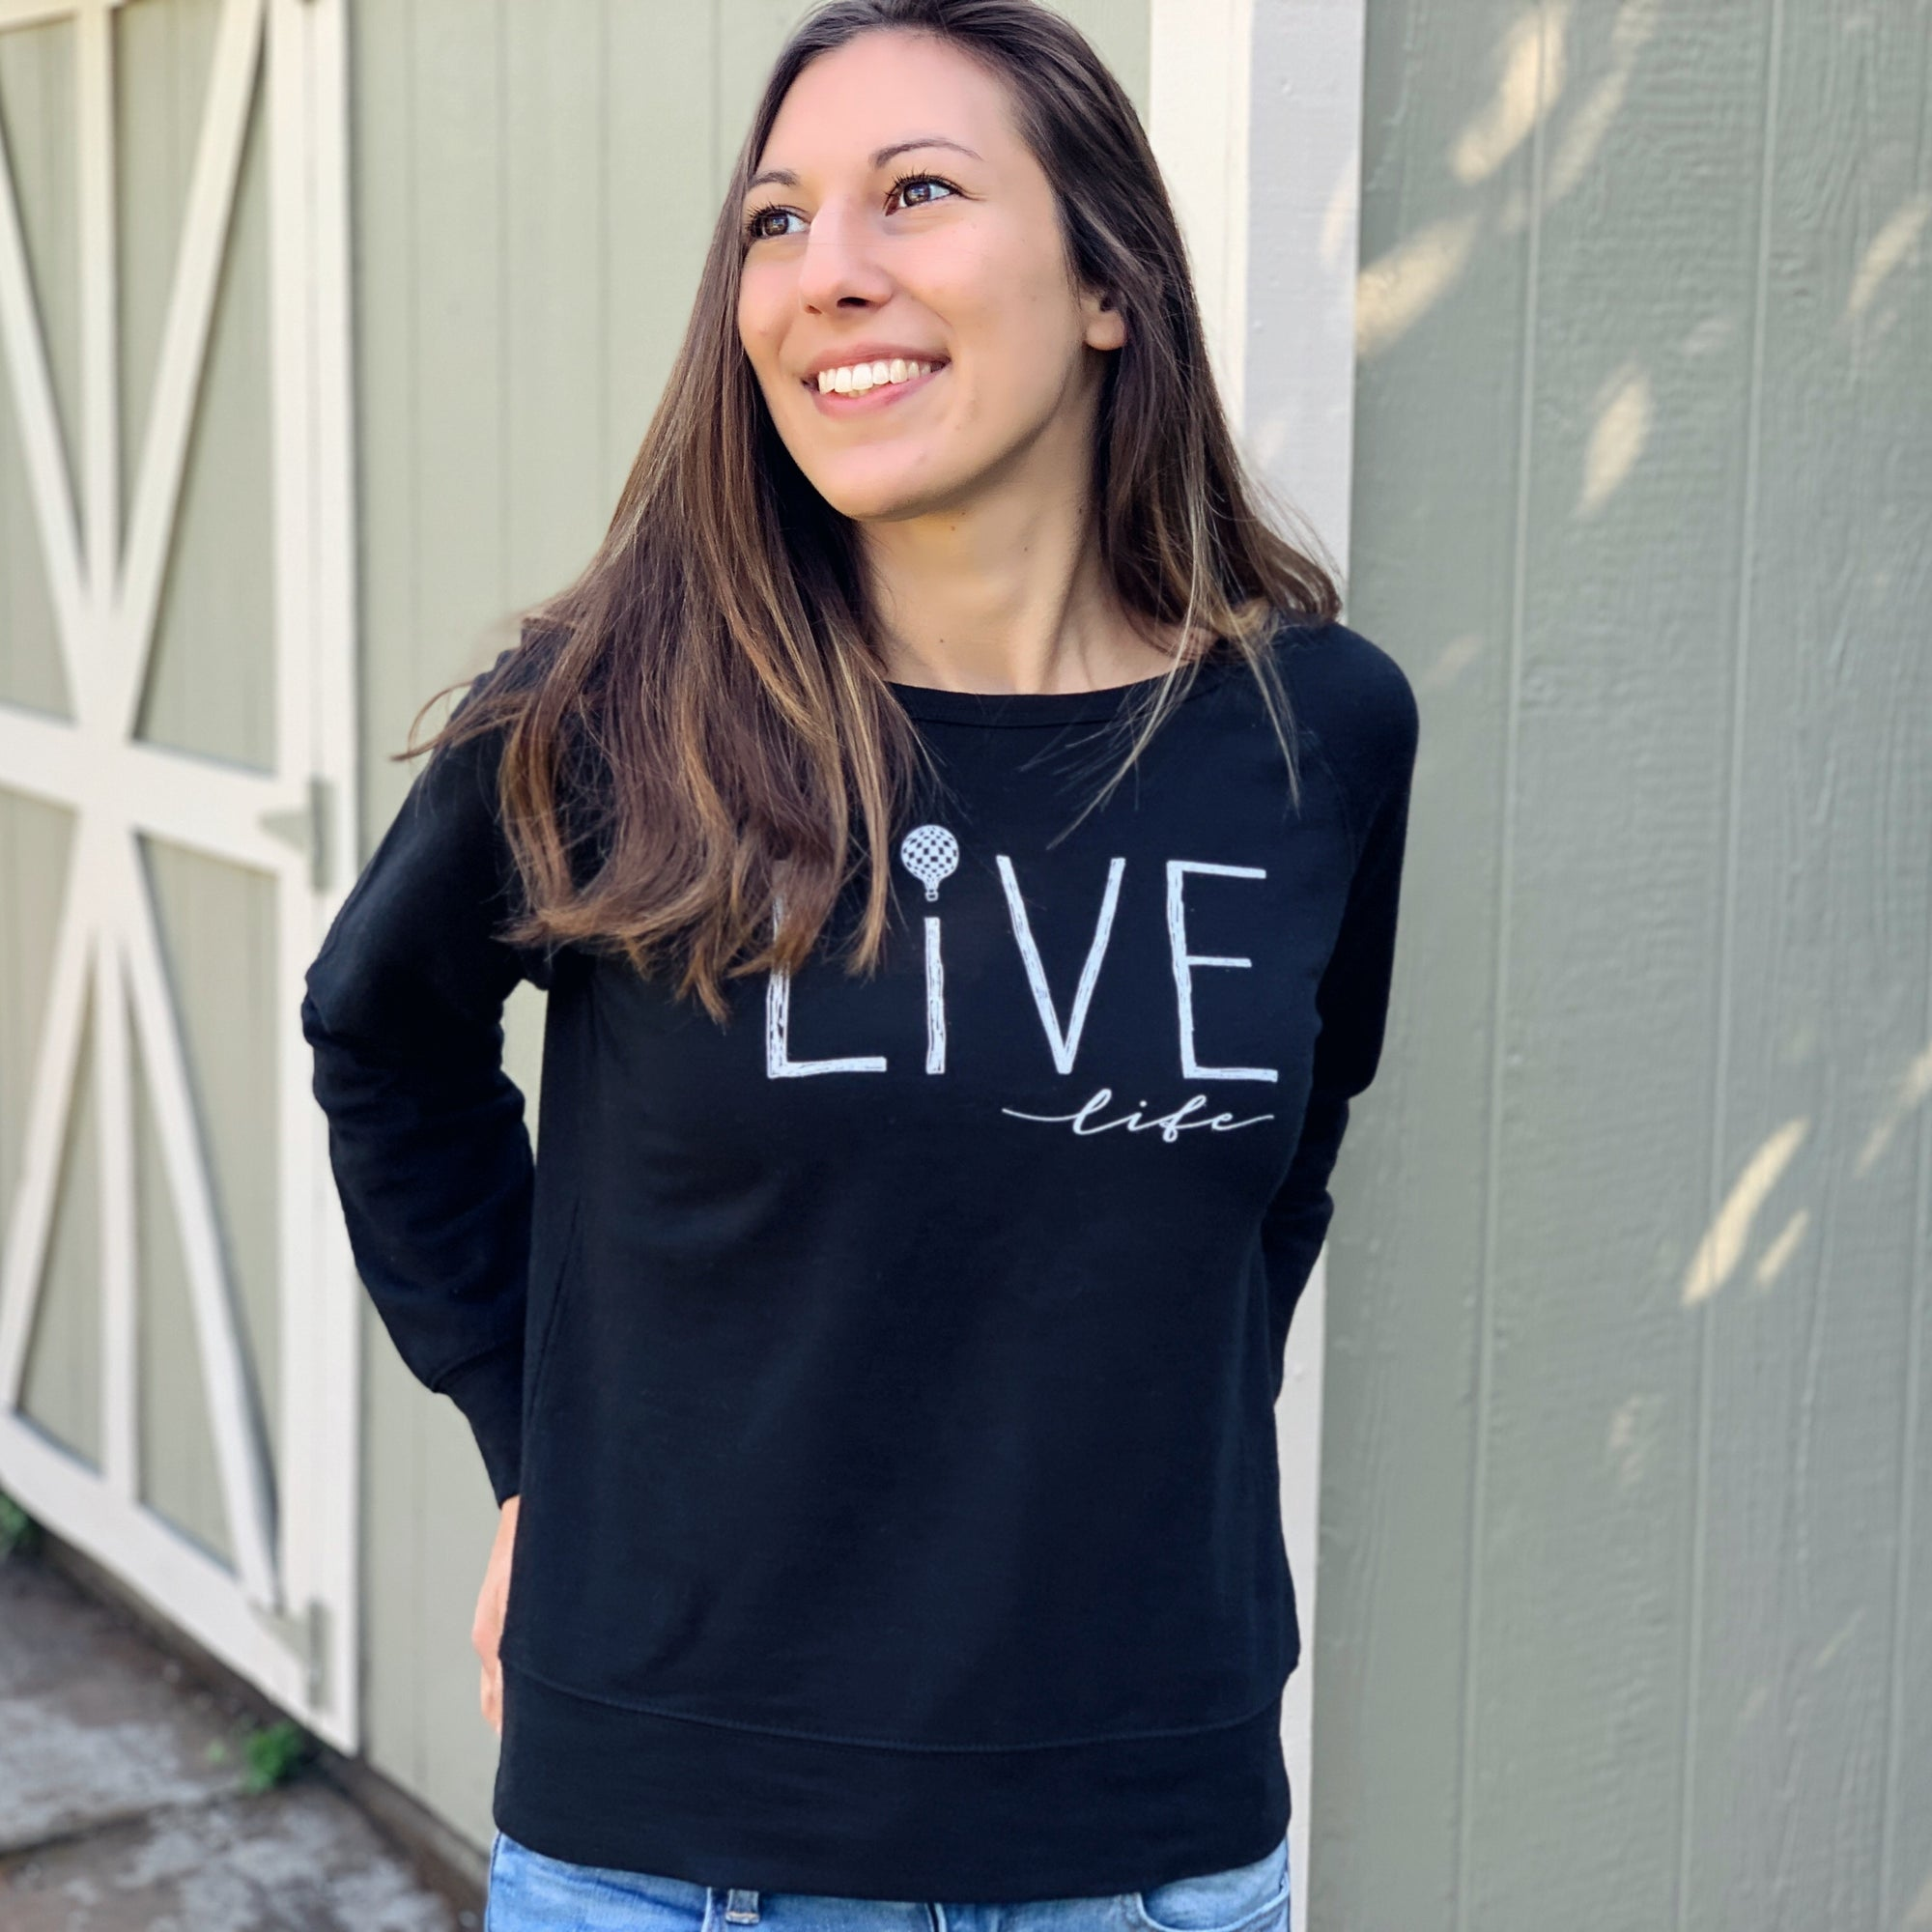 LIVE LIFE | women lightweight sweatshirt | black